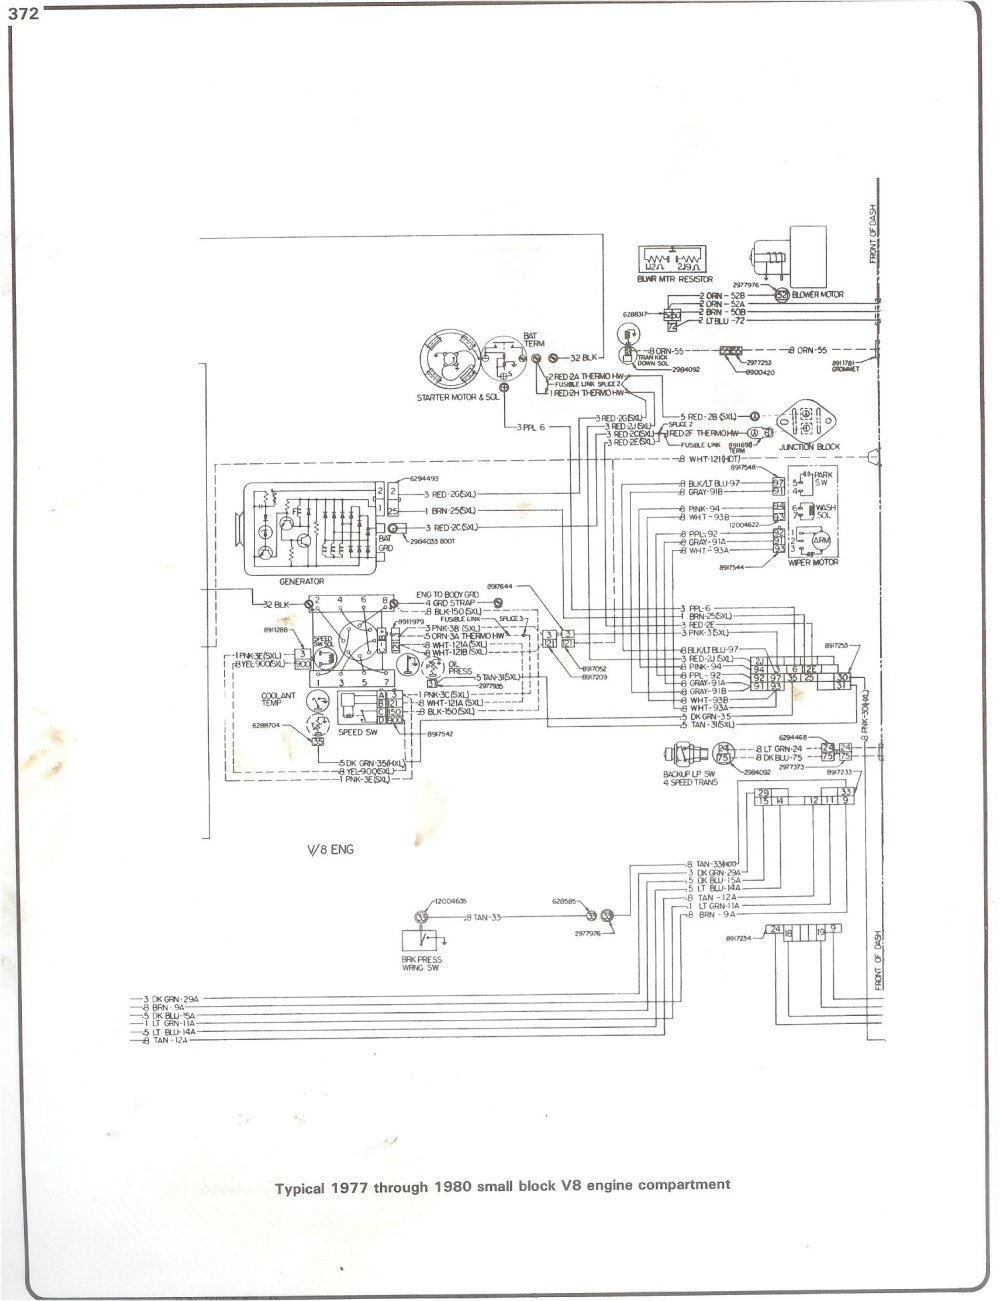 medium resolution of 1973 c65 wiring diagram wiring diagram73 chevy c65 truck wiring diagram wiring diagram datatesting an a c